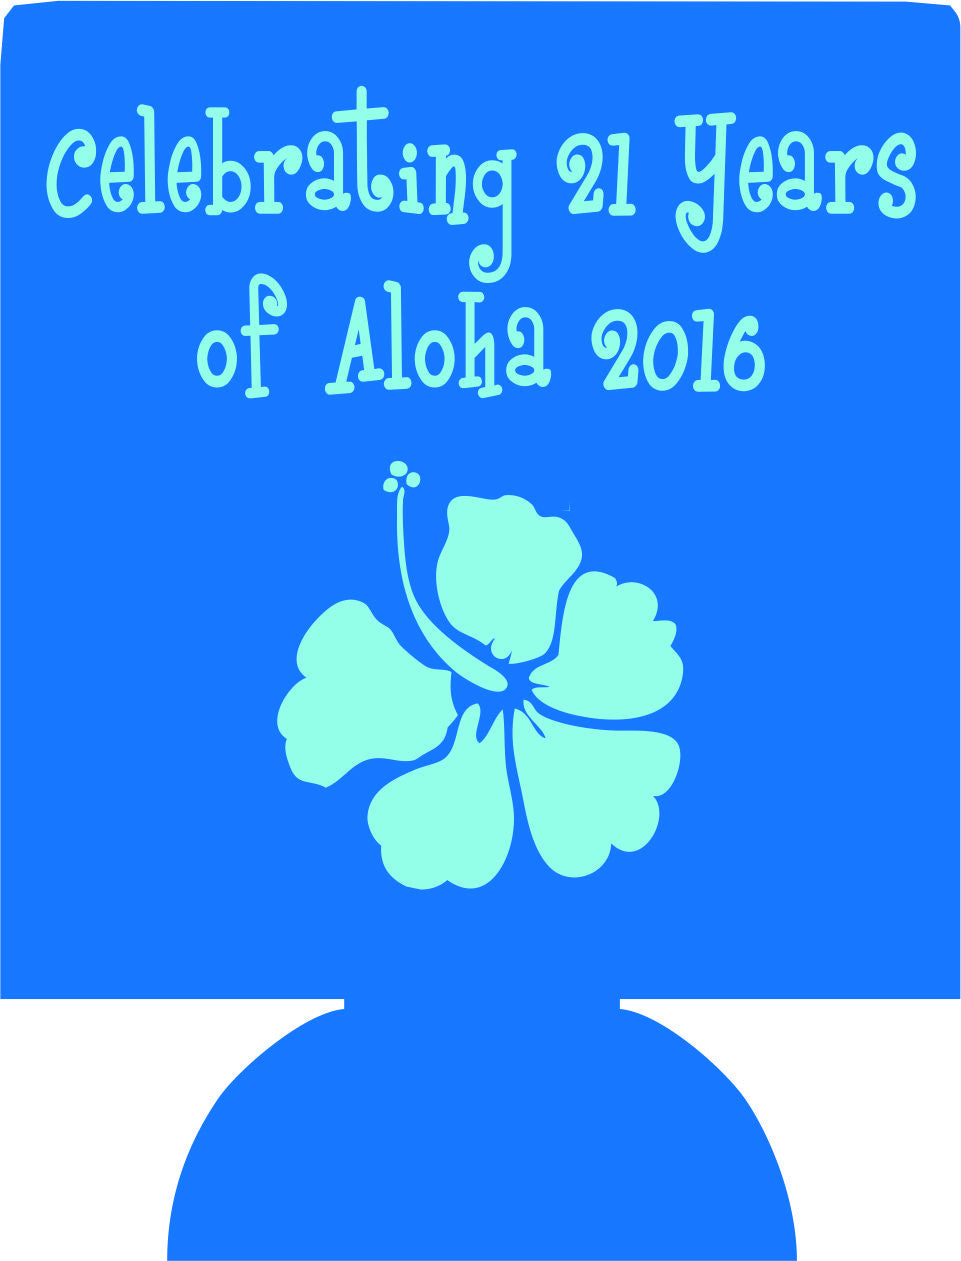 Aloha hawaii 21st Birthday koozies custom can coolers